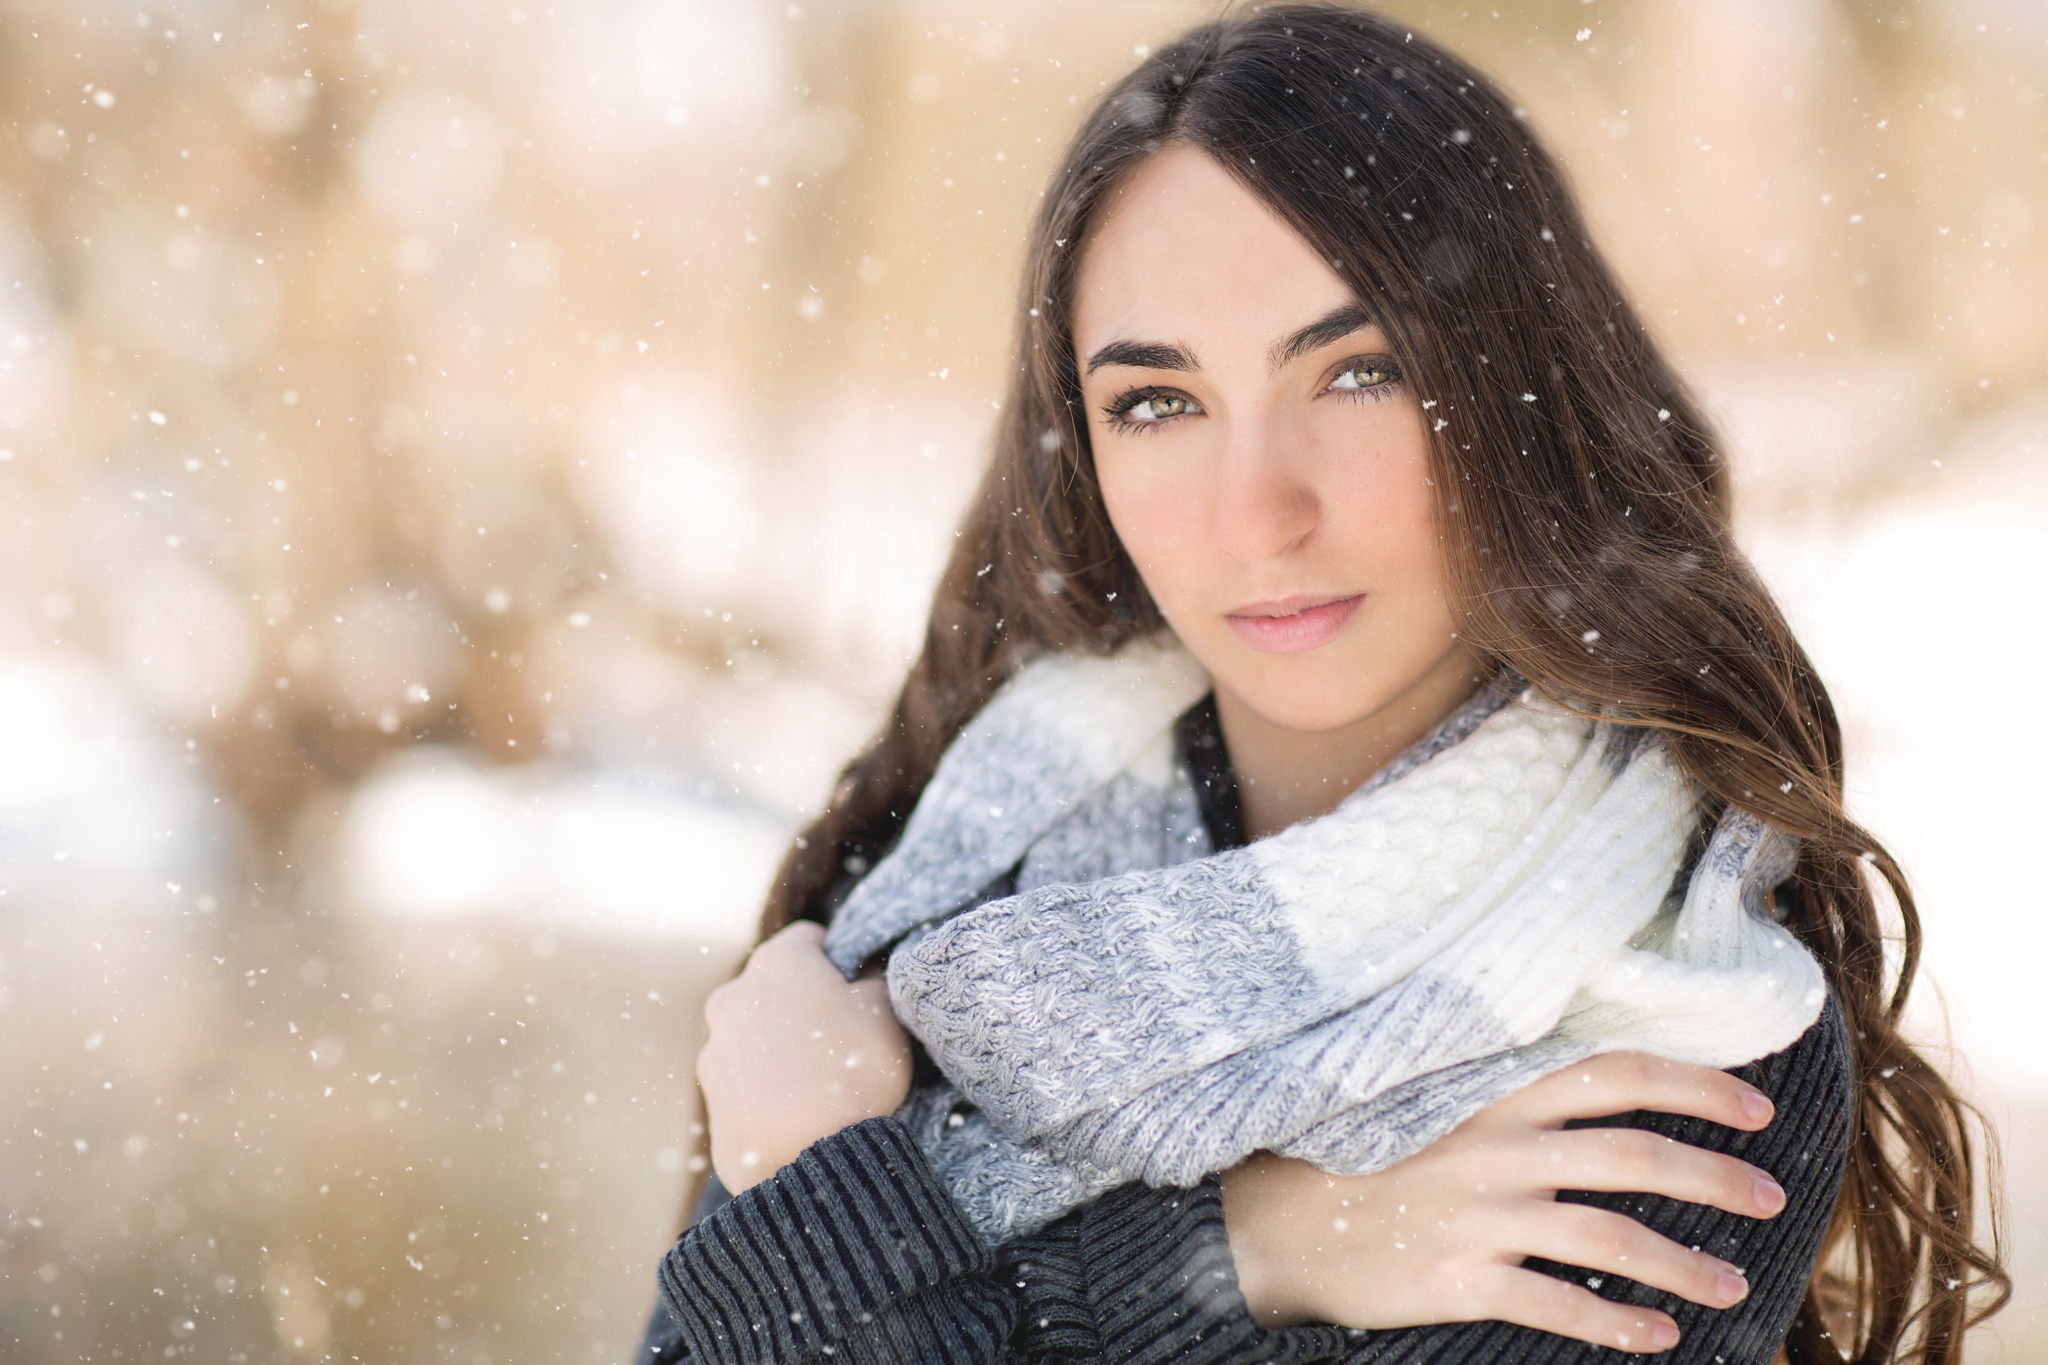 Hood Photography Kaeley Shenenberger-1-2 SNOW.jpg